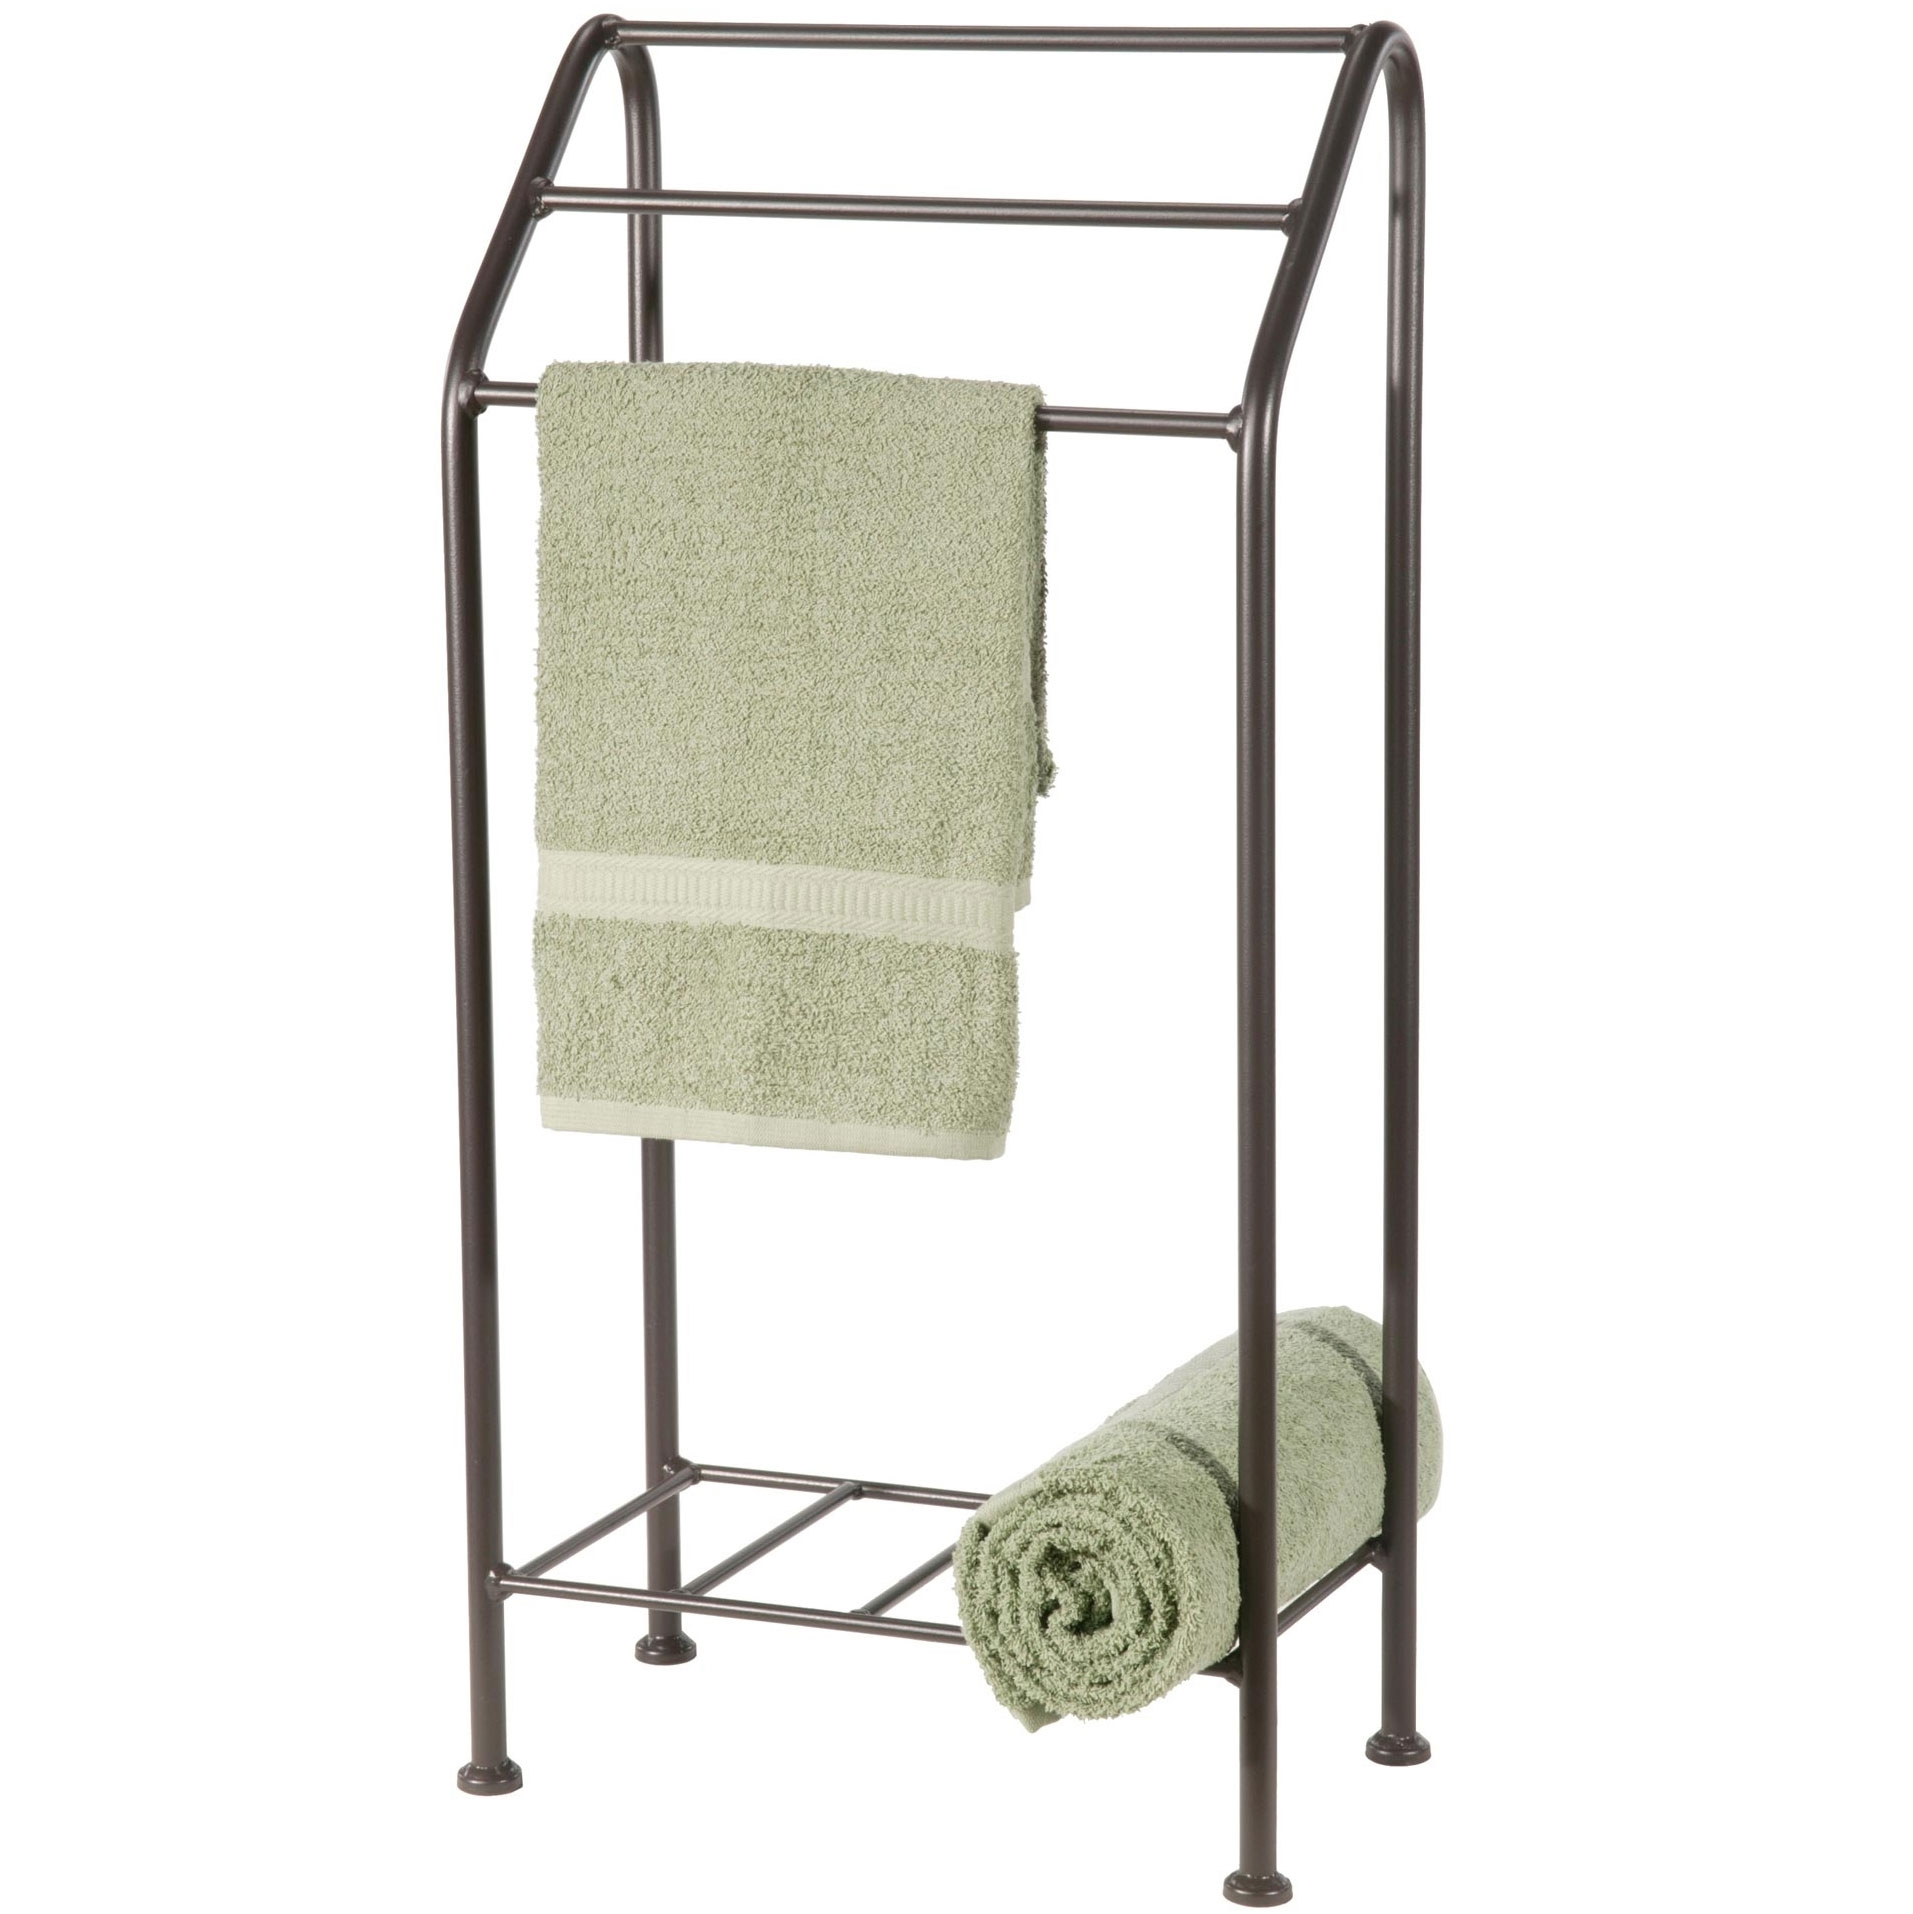 Pictured Here Is The Free Standing Monticello Towel Rack With A Timeless Natural Black Finish For